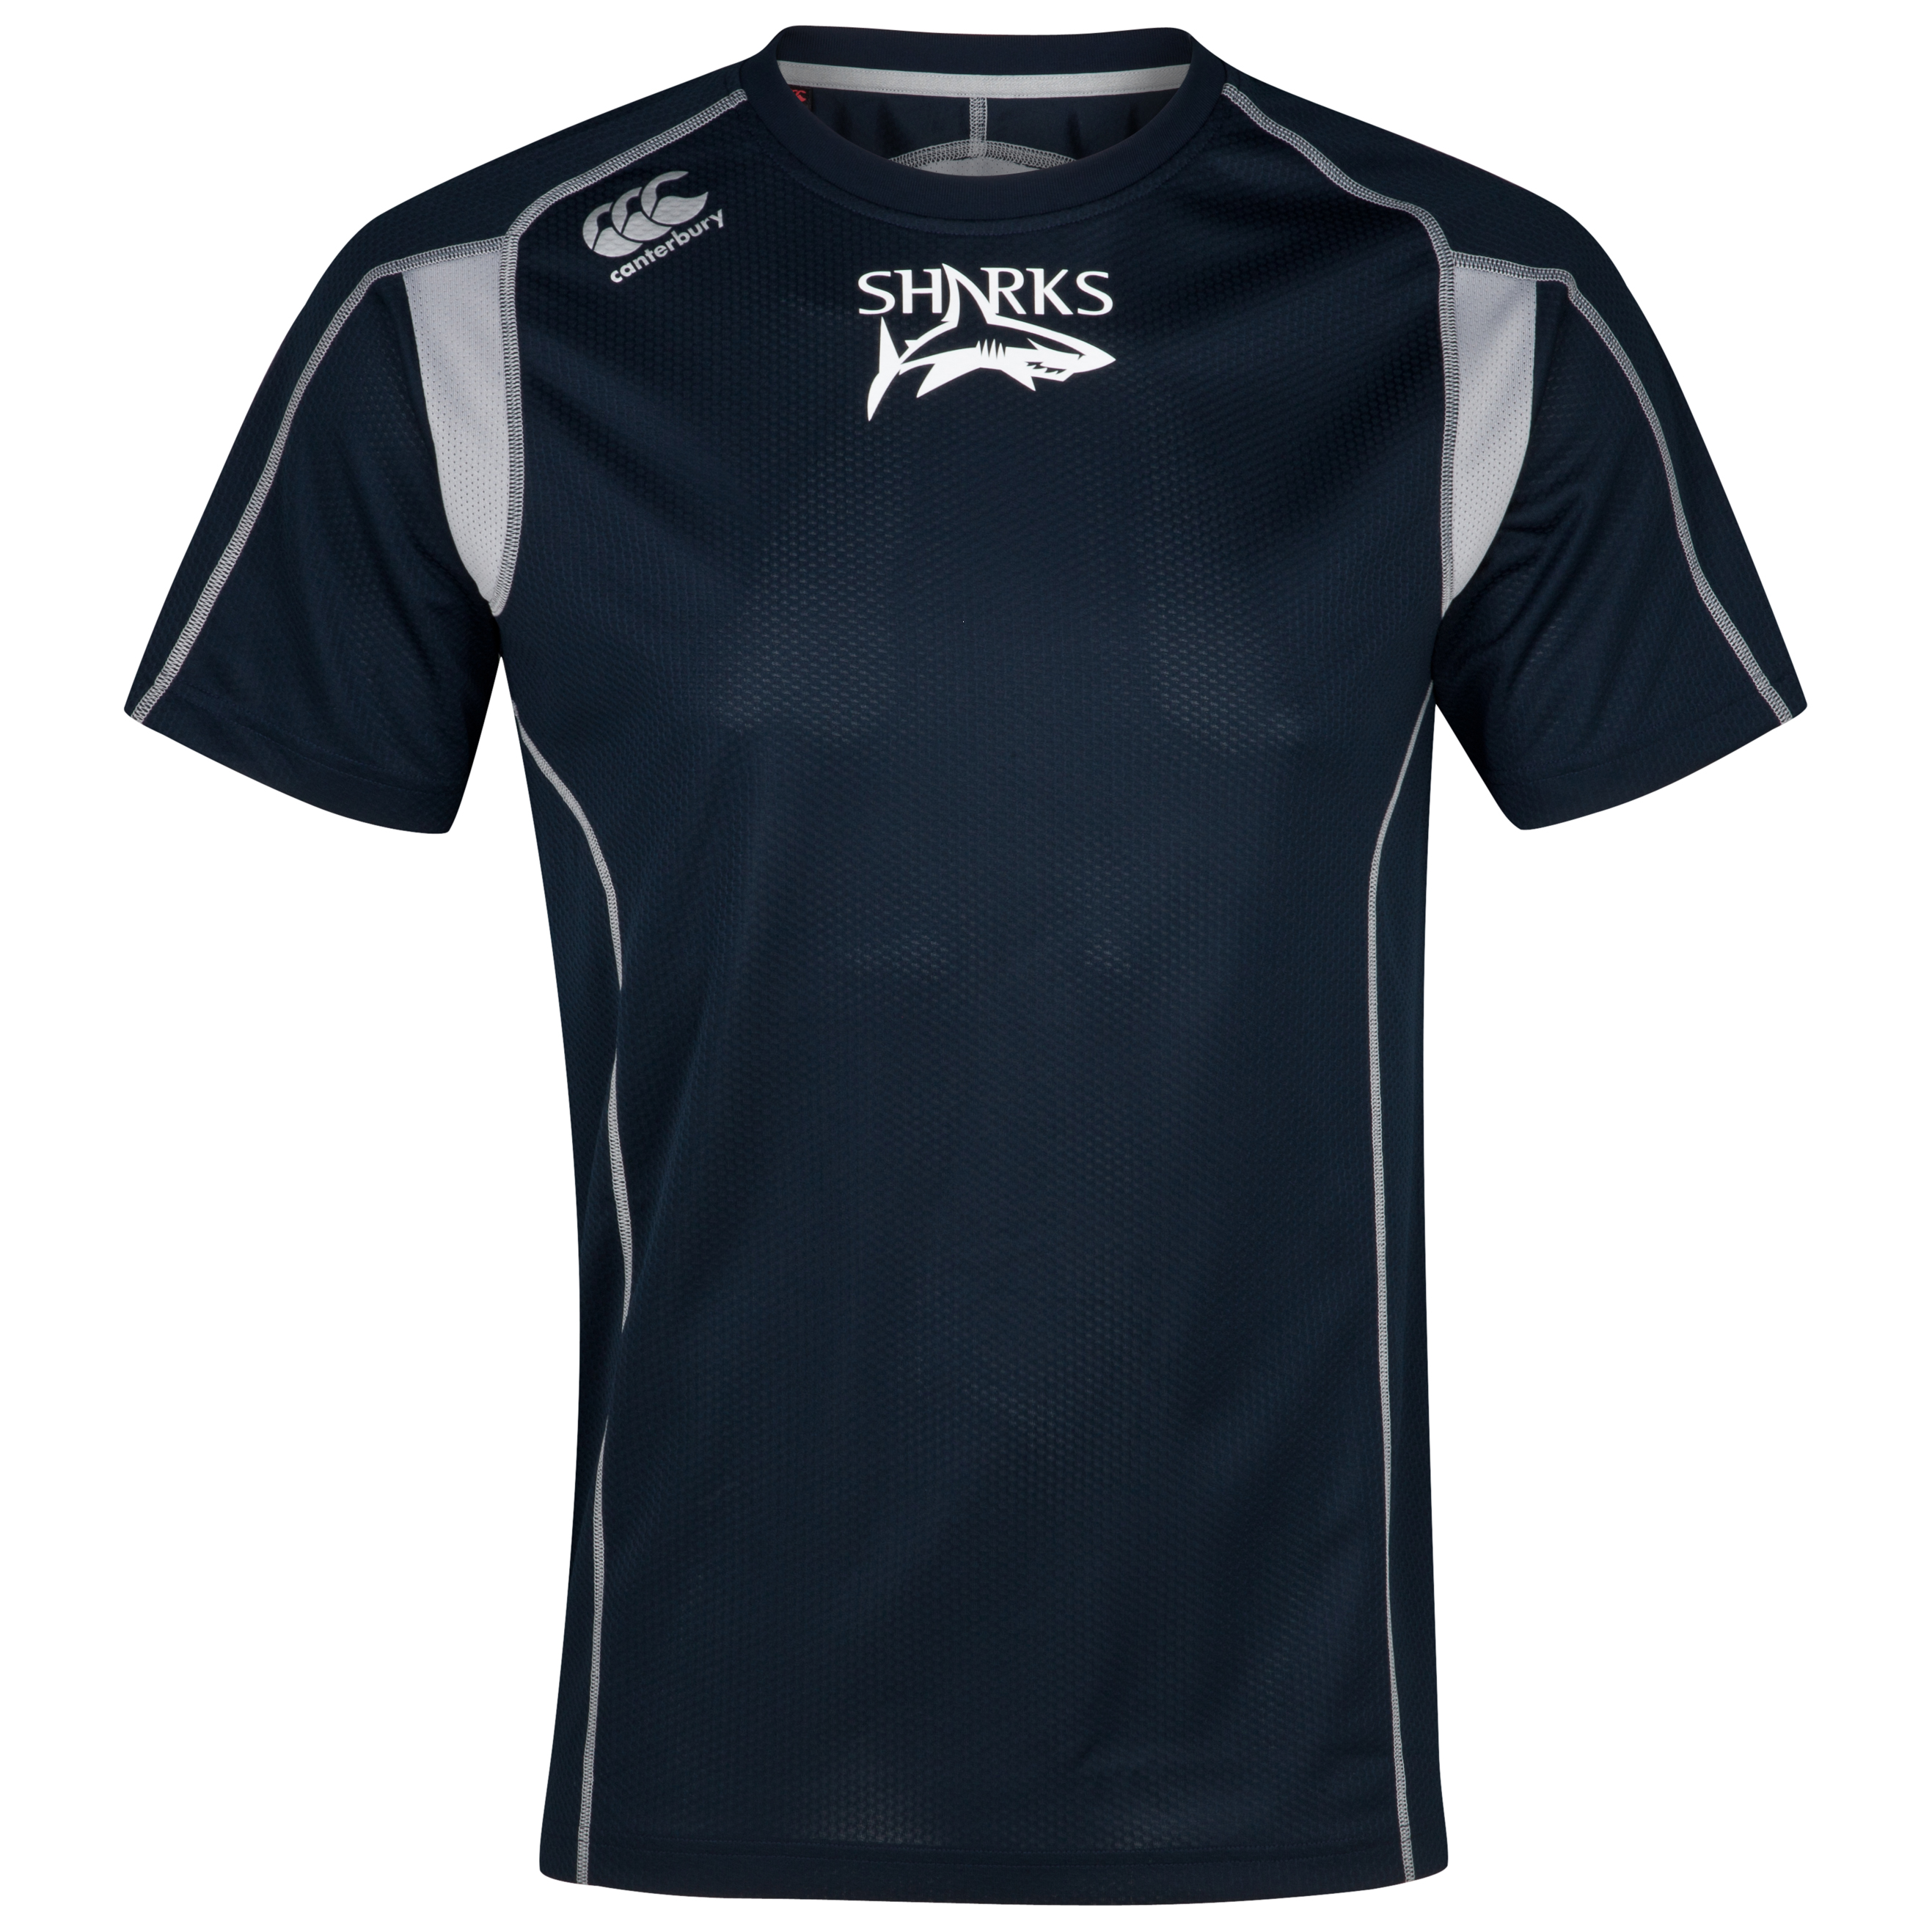 Sale Sharks Pro Cut and Sew Dry T-Shirt - Navy/Silver